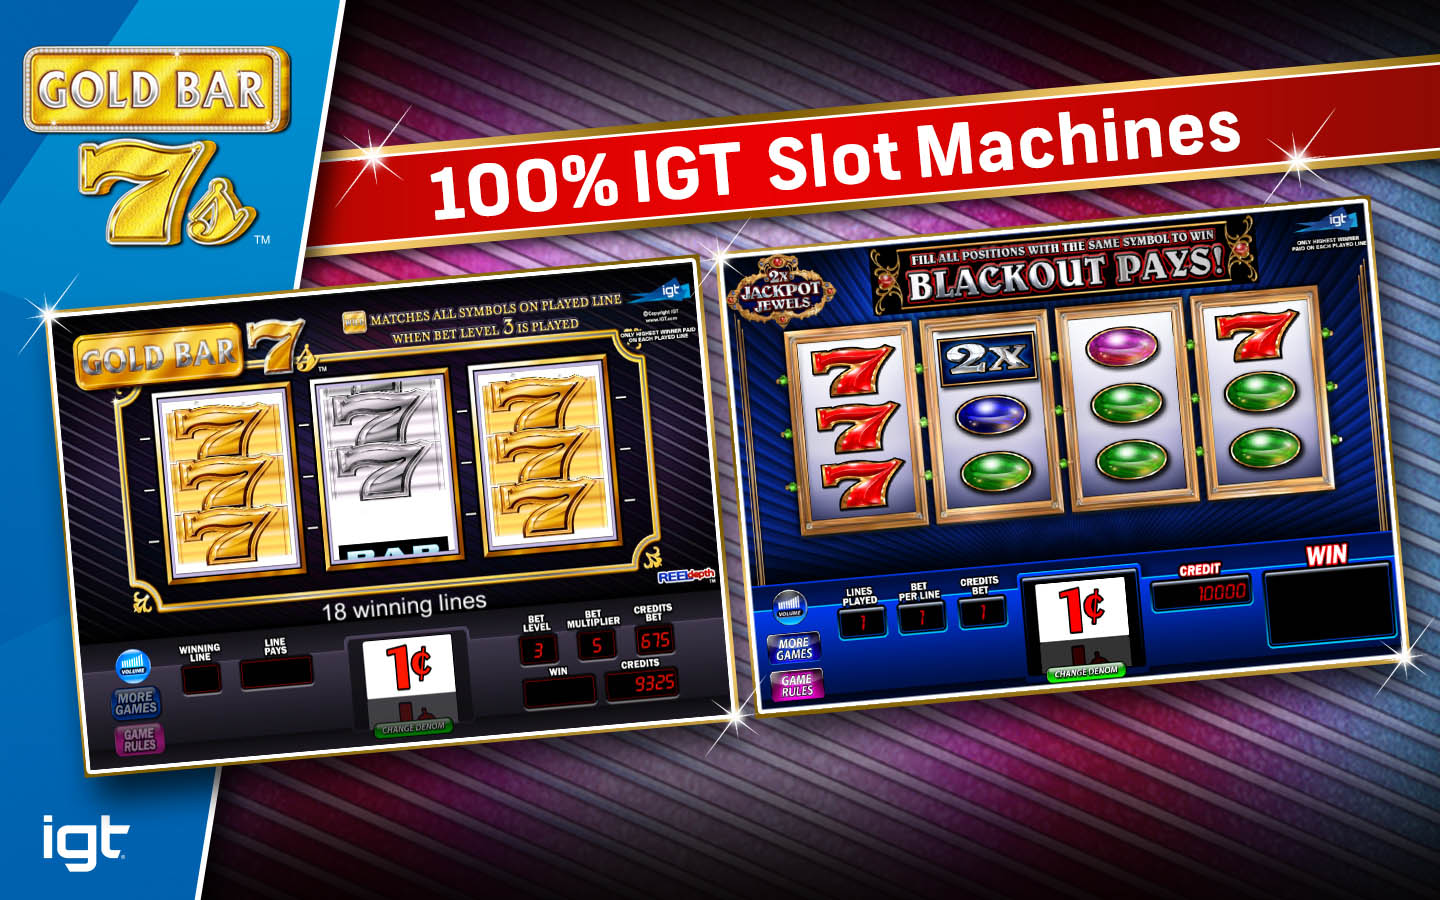 Slot machine where the gold